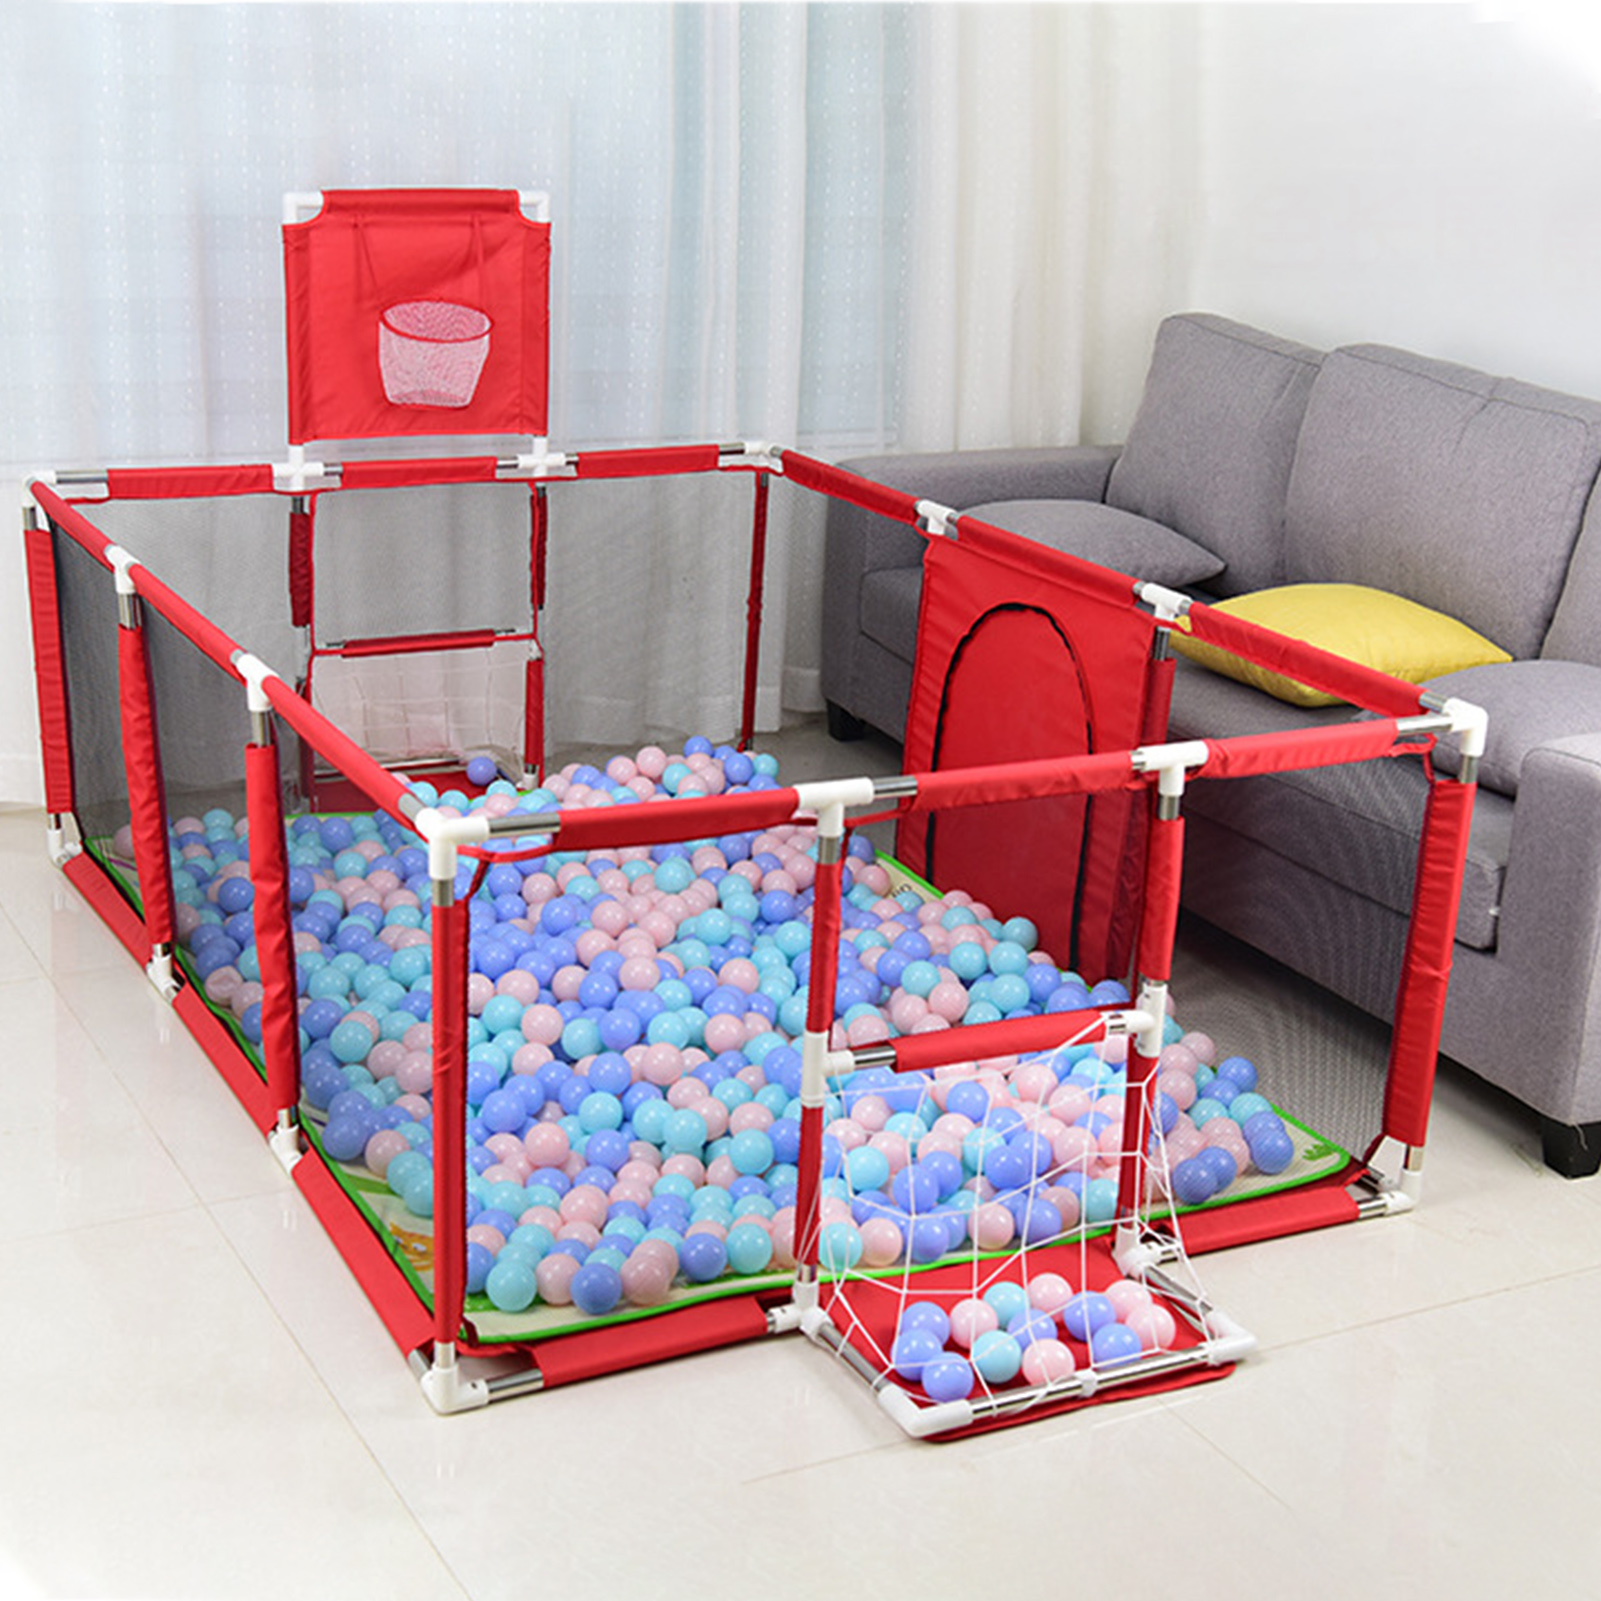 Baby Playpens Ball Pool With Basketball Hoop Extra Large Baby Mesh Fence Indoor Outdoor Playground Dry Pool Playpen For Children